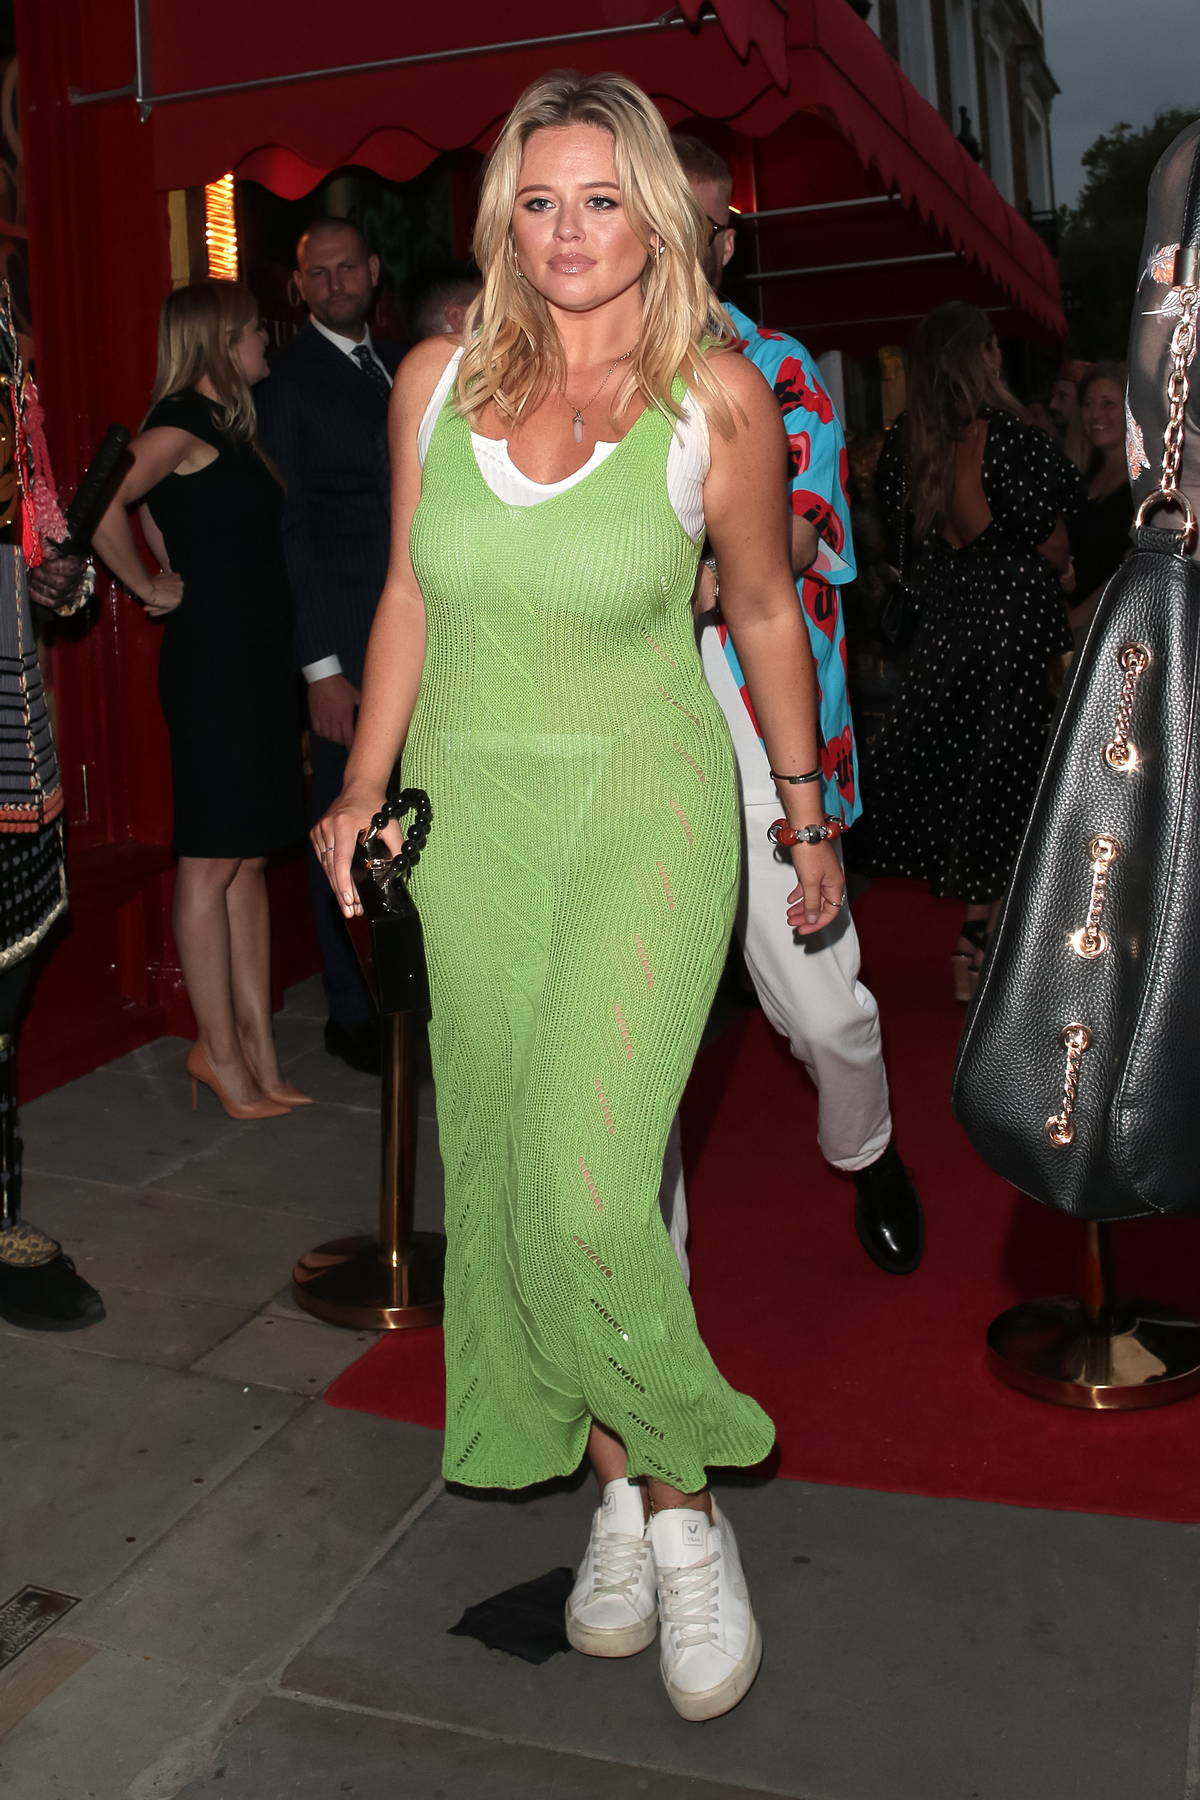 Emily Atack stuns in a sheer green dress as she leaves The Ivy Asia Restaurant Launch Party with Jude Taylor in London, UK